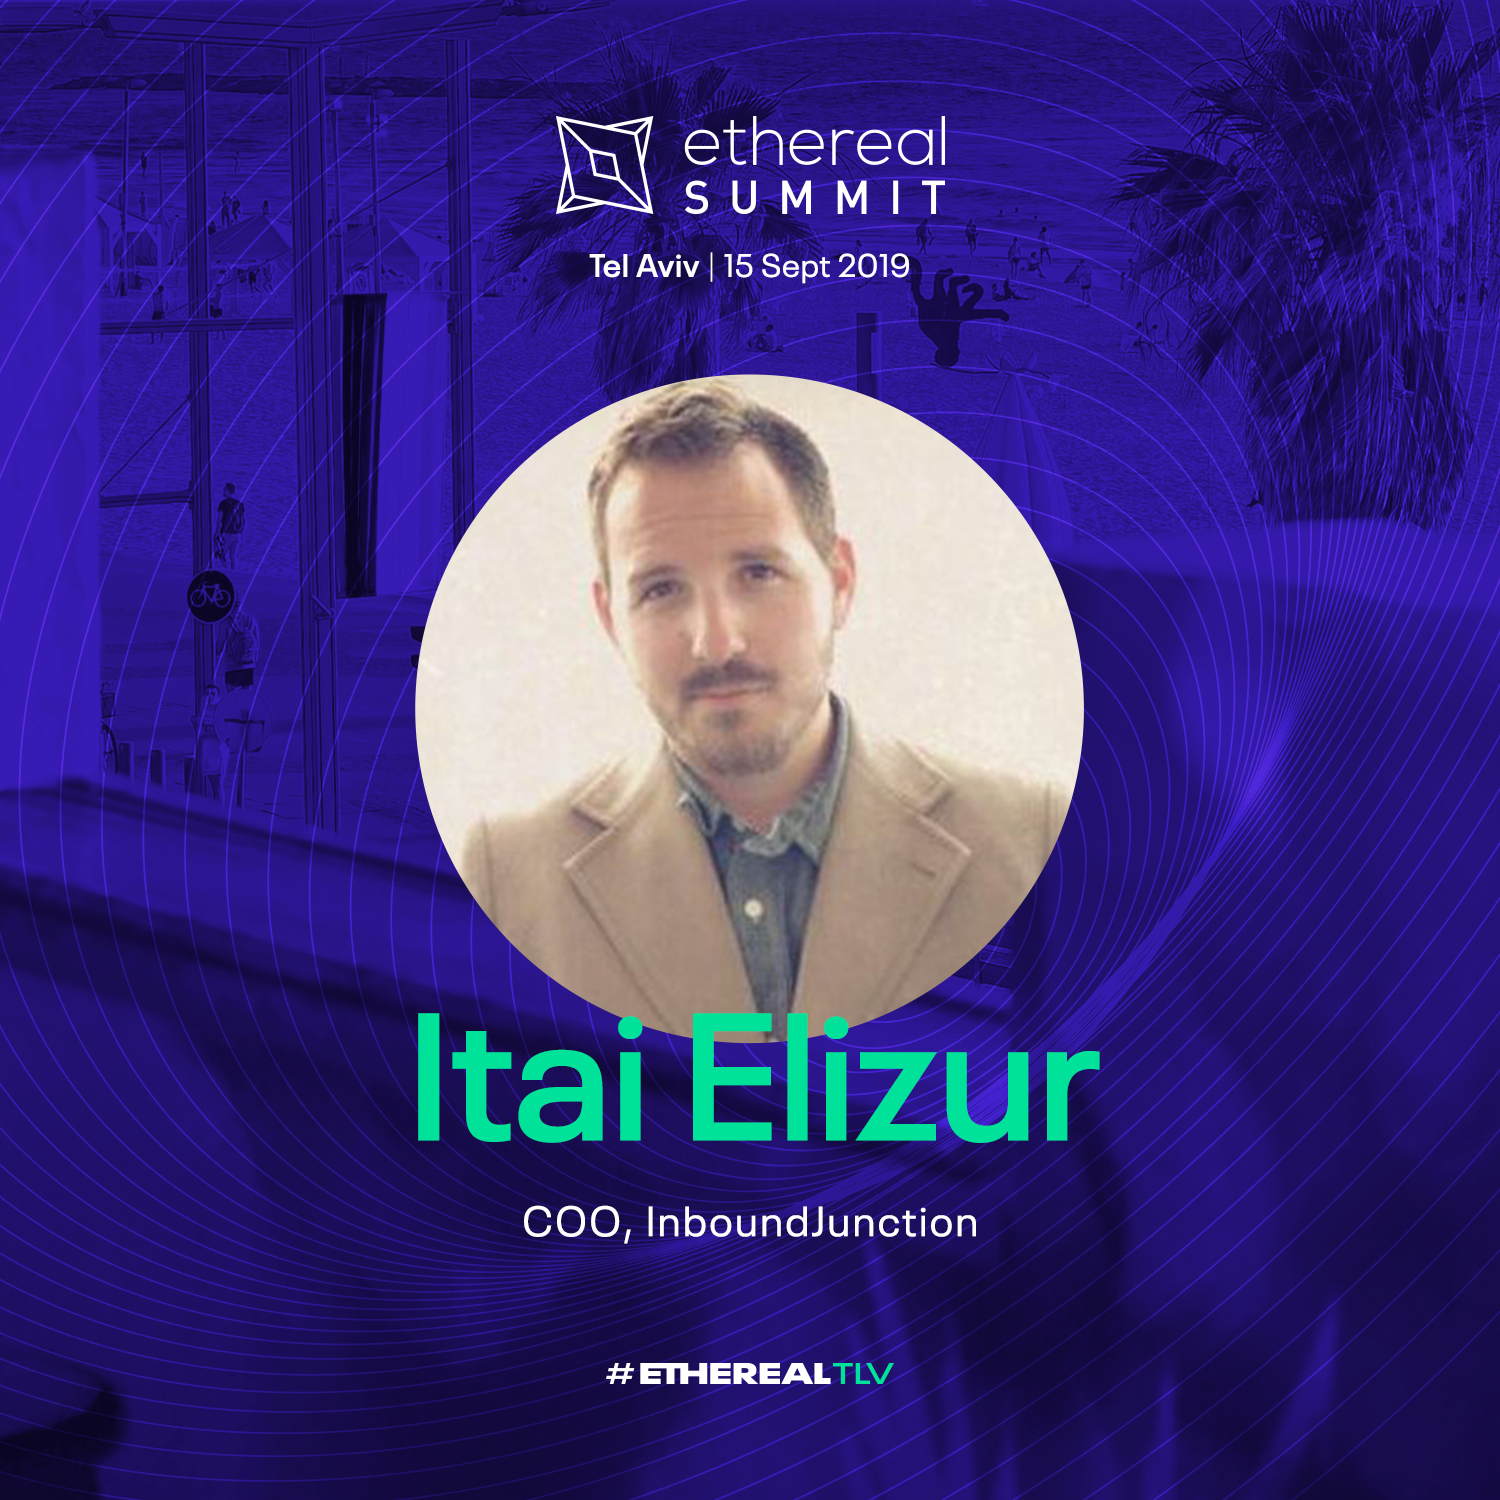 ethereal-tlv-2019-speaker-cards-square-itai-elizur.png